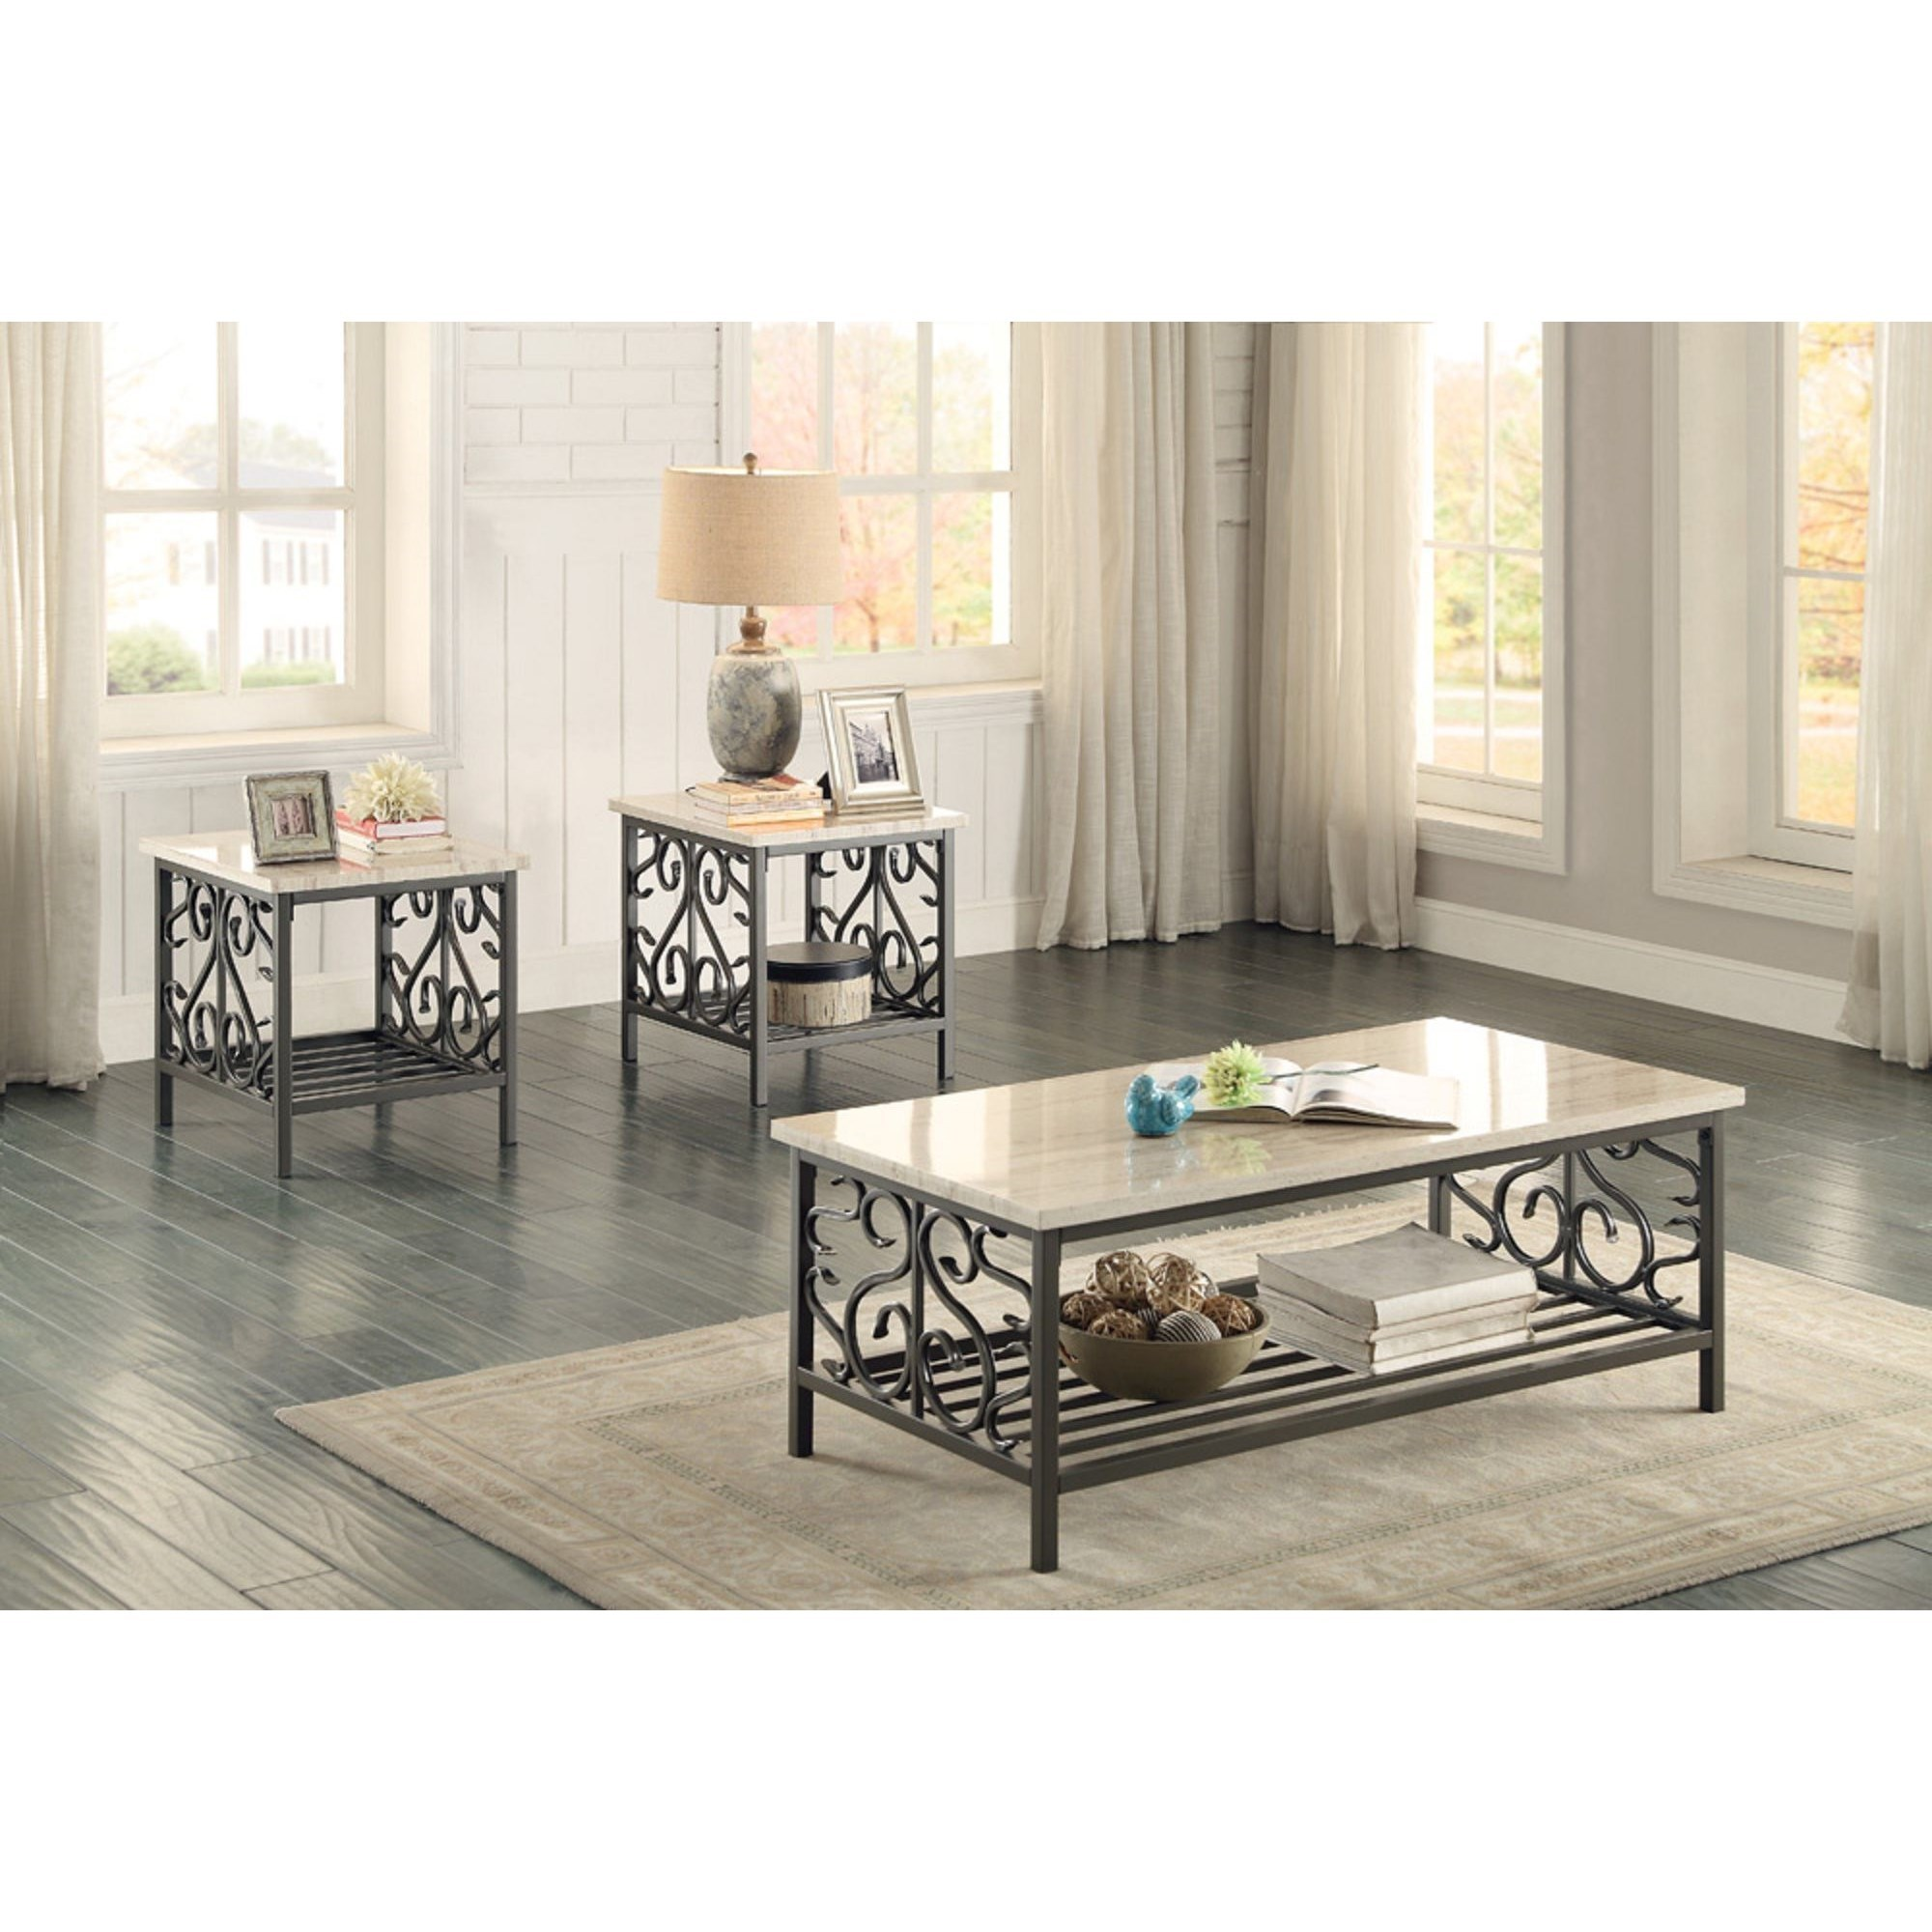 Homelegance fairhope transitional 3pc occasional table for Living room group sets